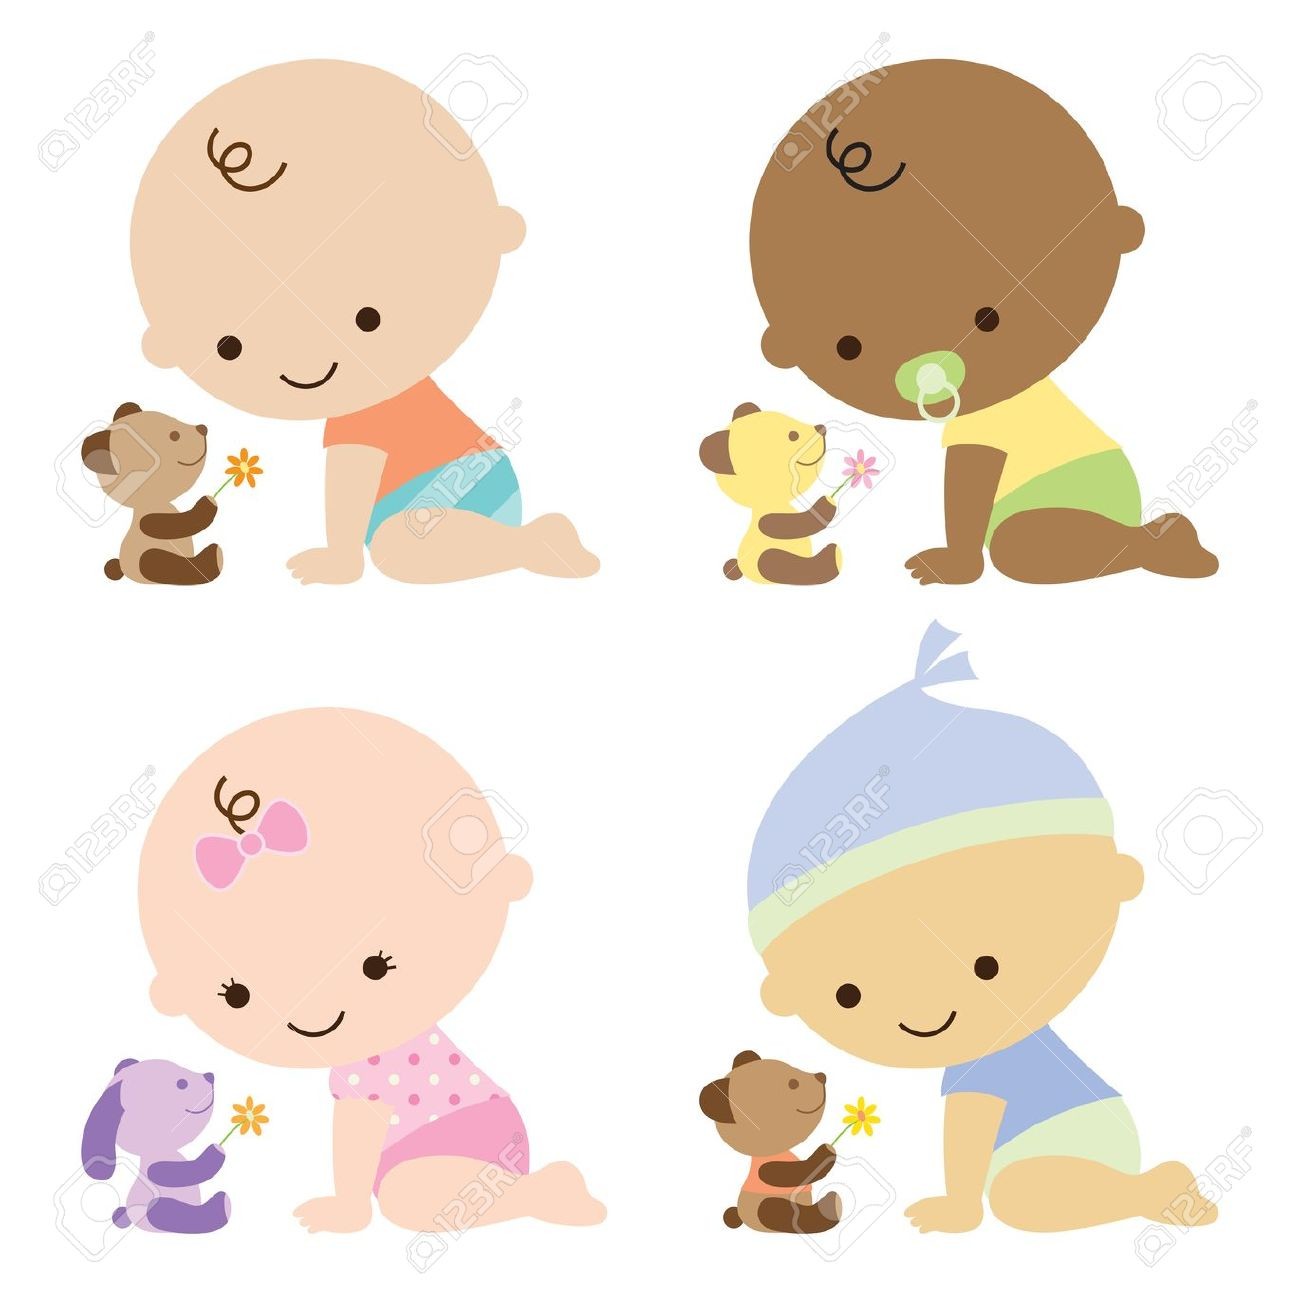 Baby clipart cute baby About about images and